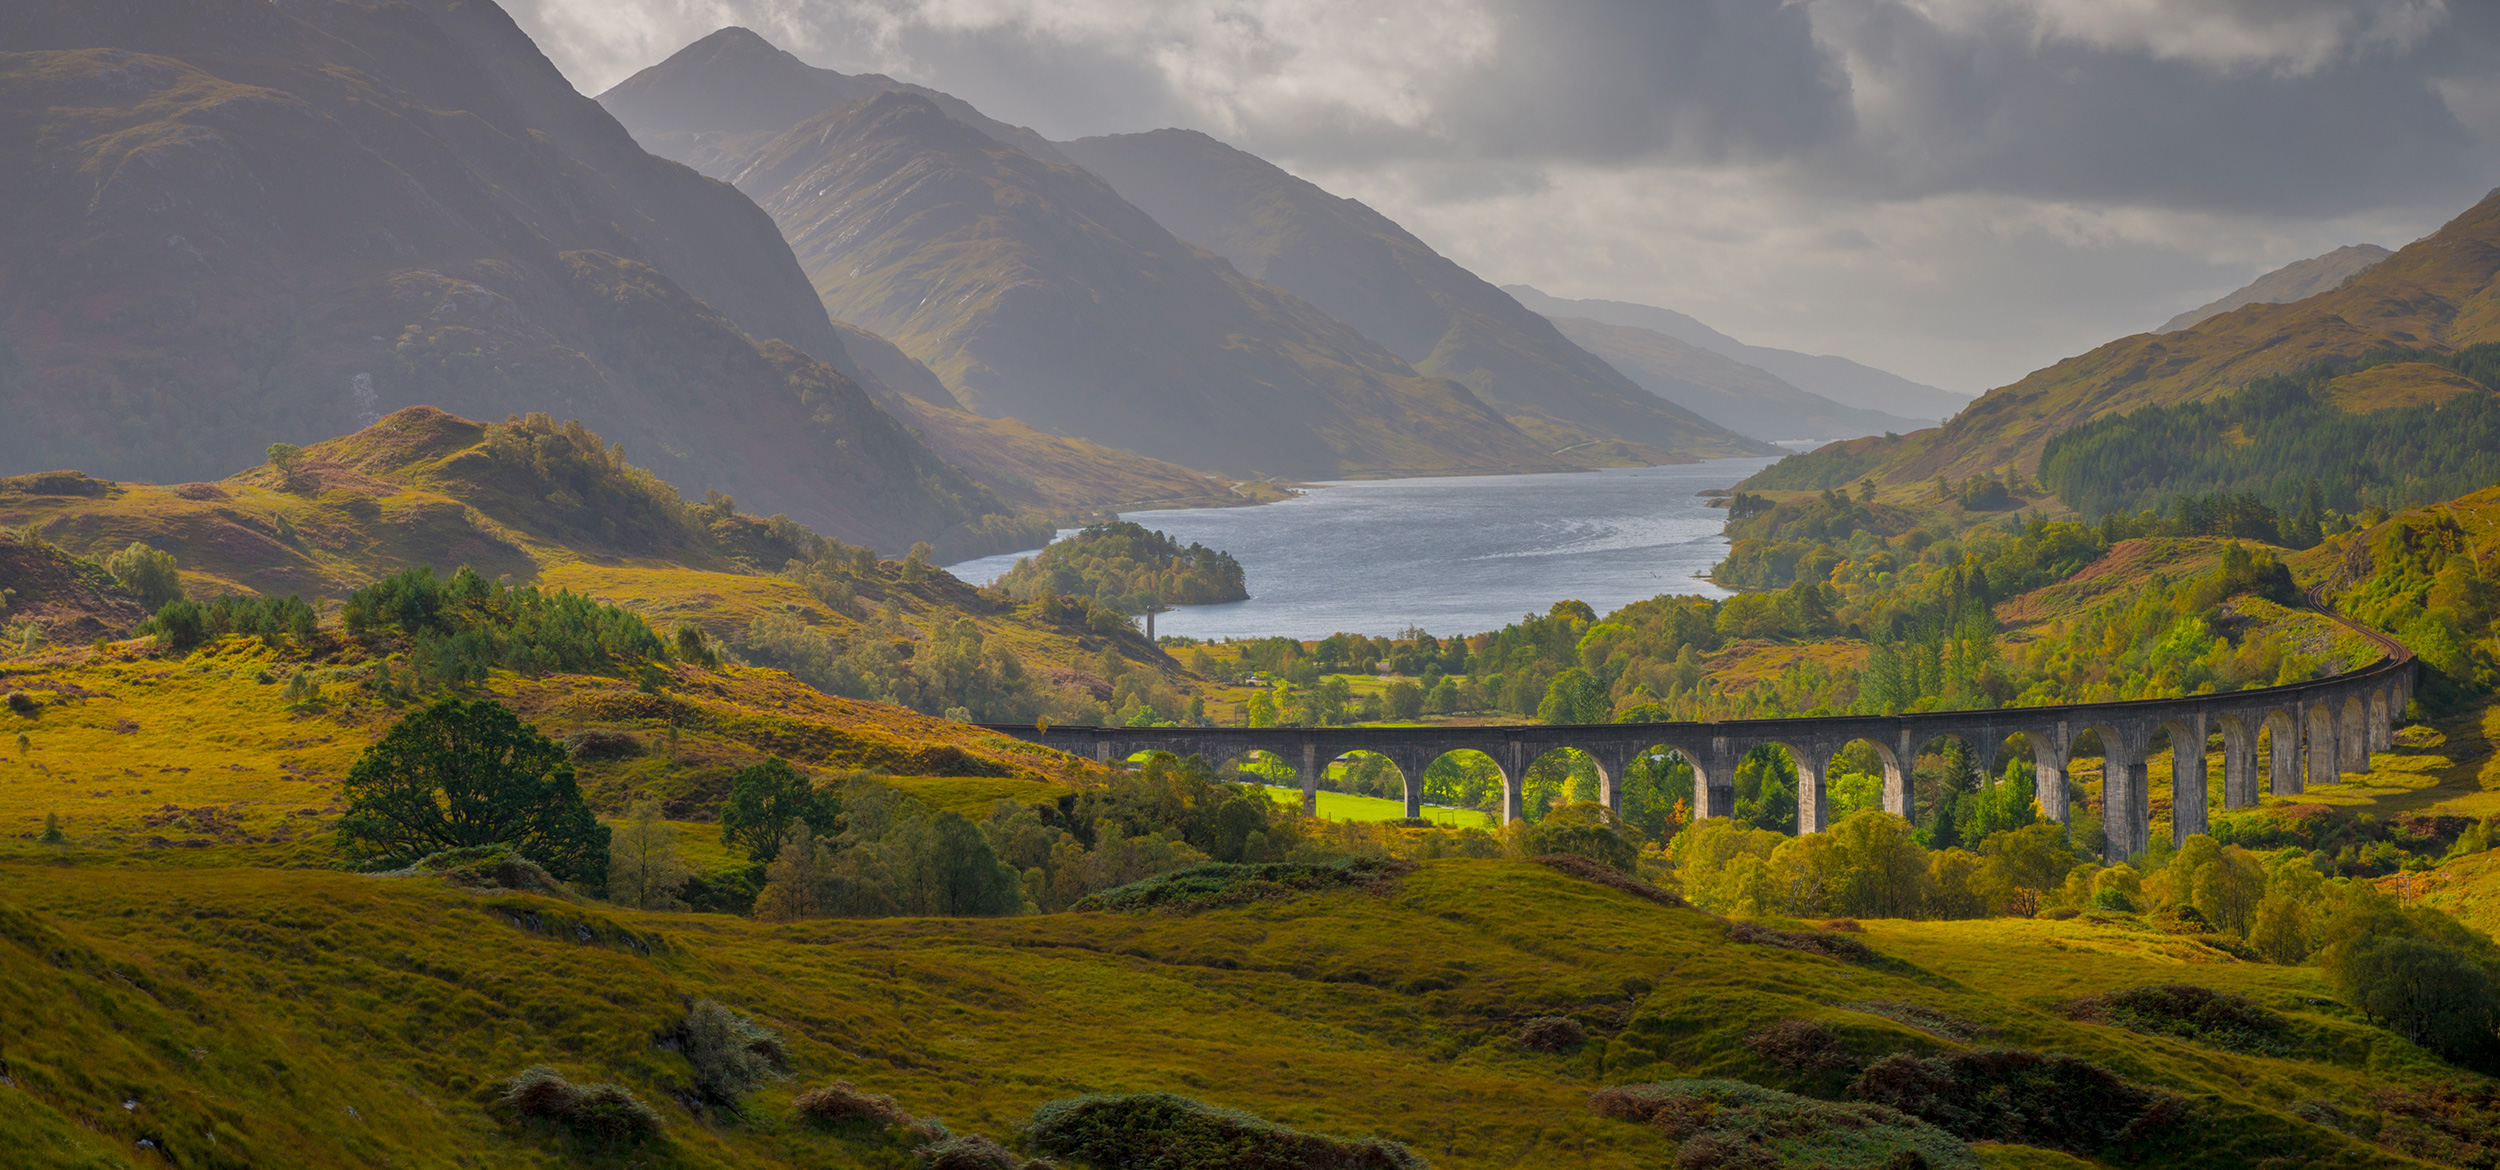 Glenfinnan Railway Viaduct, part of the West Highland Line, Glenfinnan, Loch Shiel, Highlands, Scotland, United Kingdom.